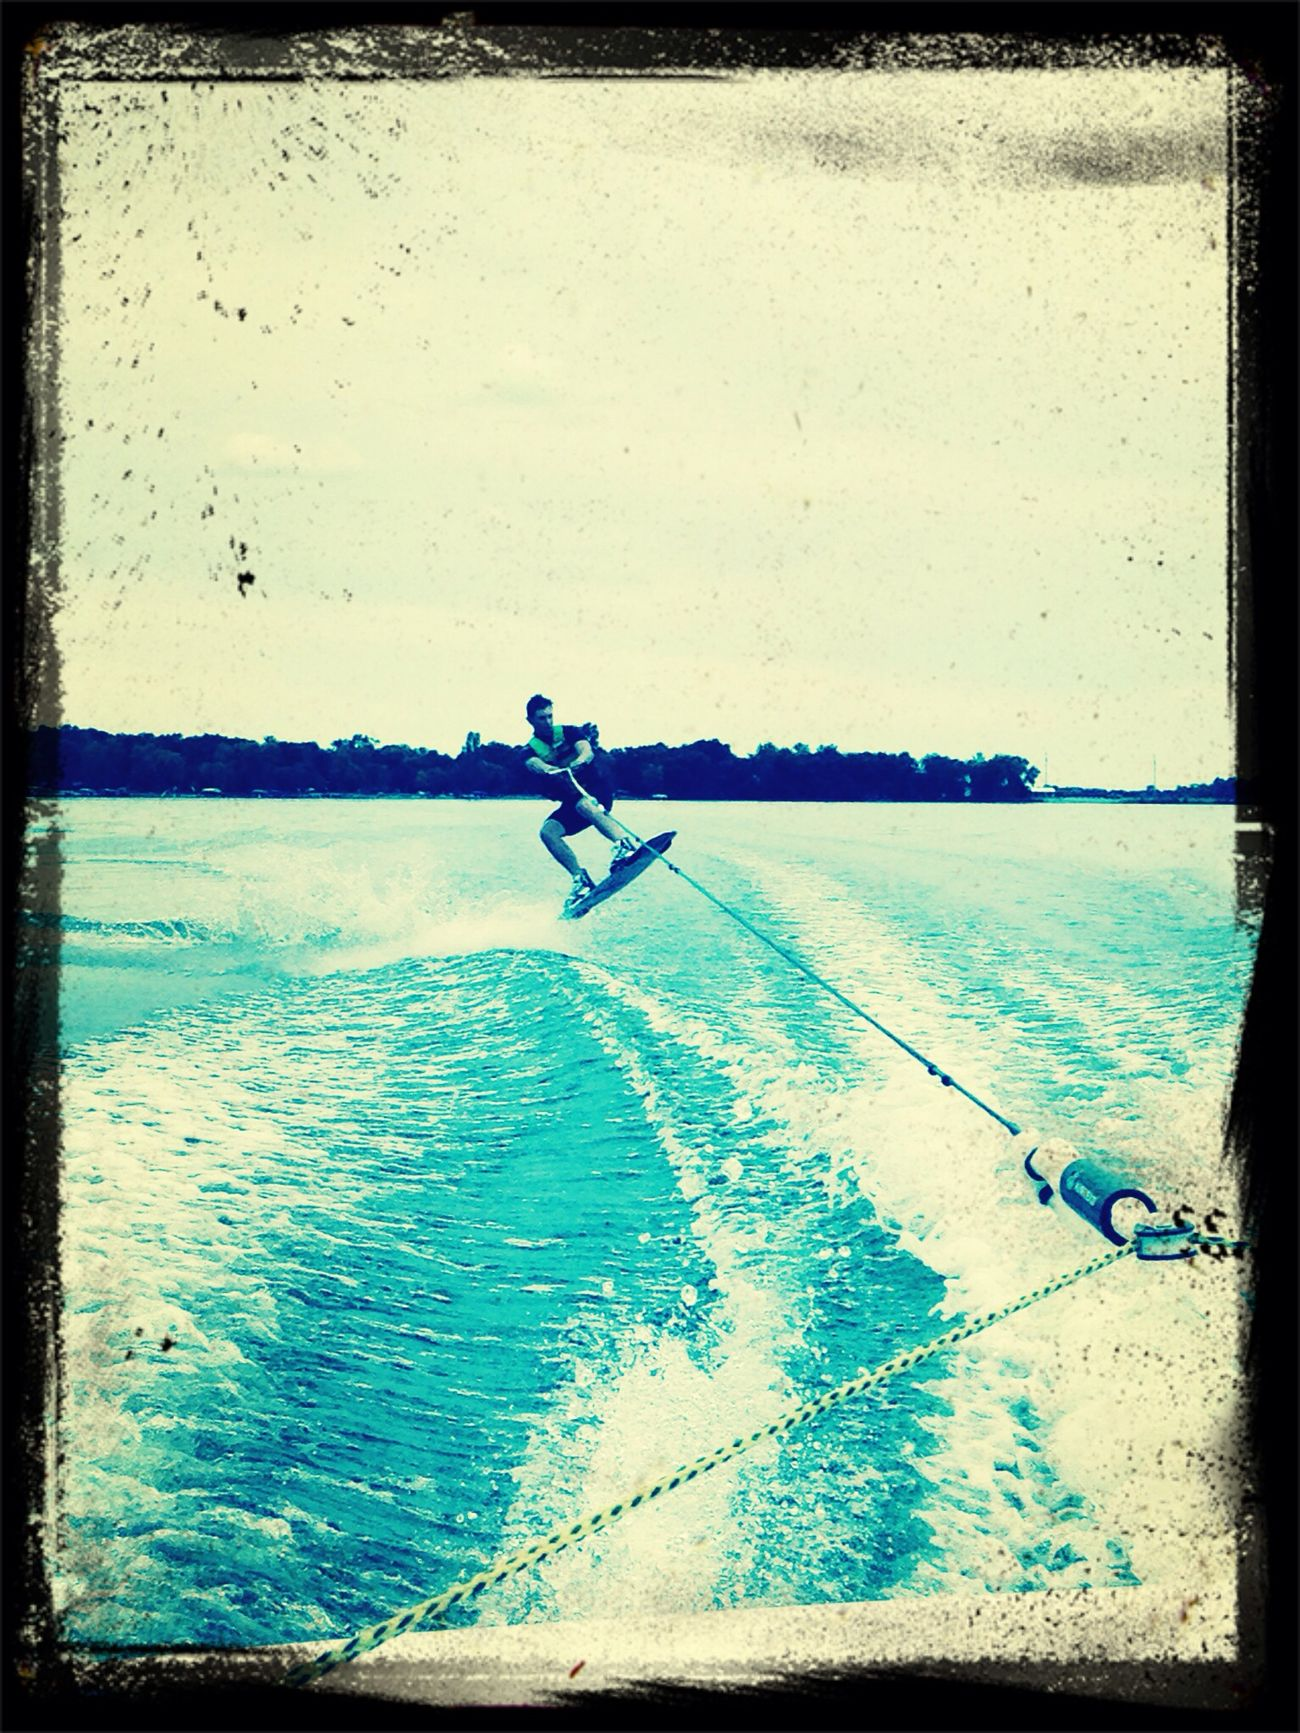 Cousin Wake boarding